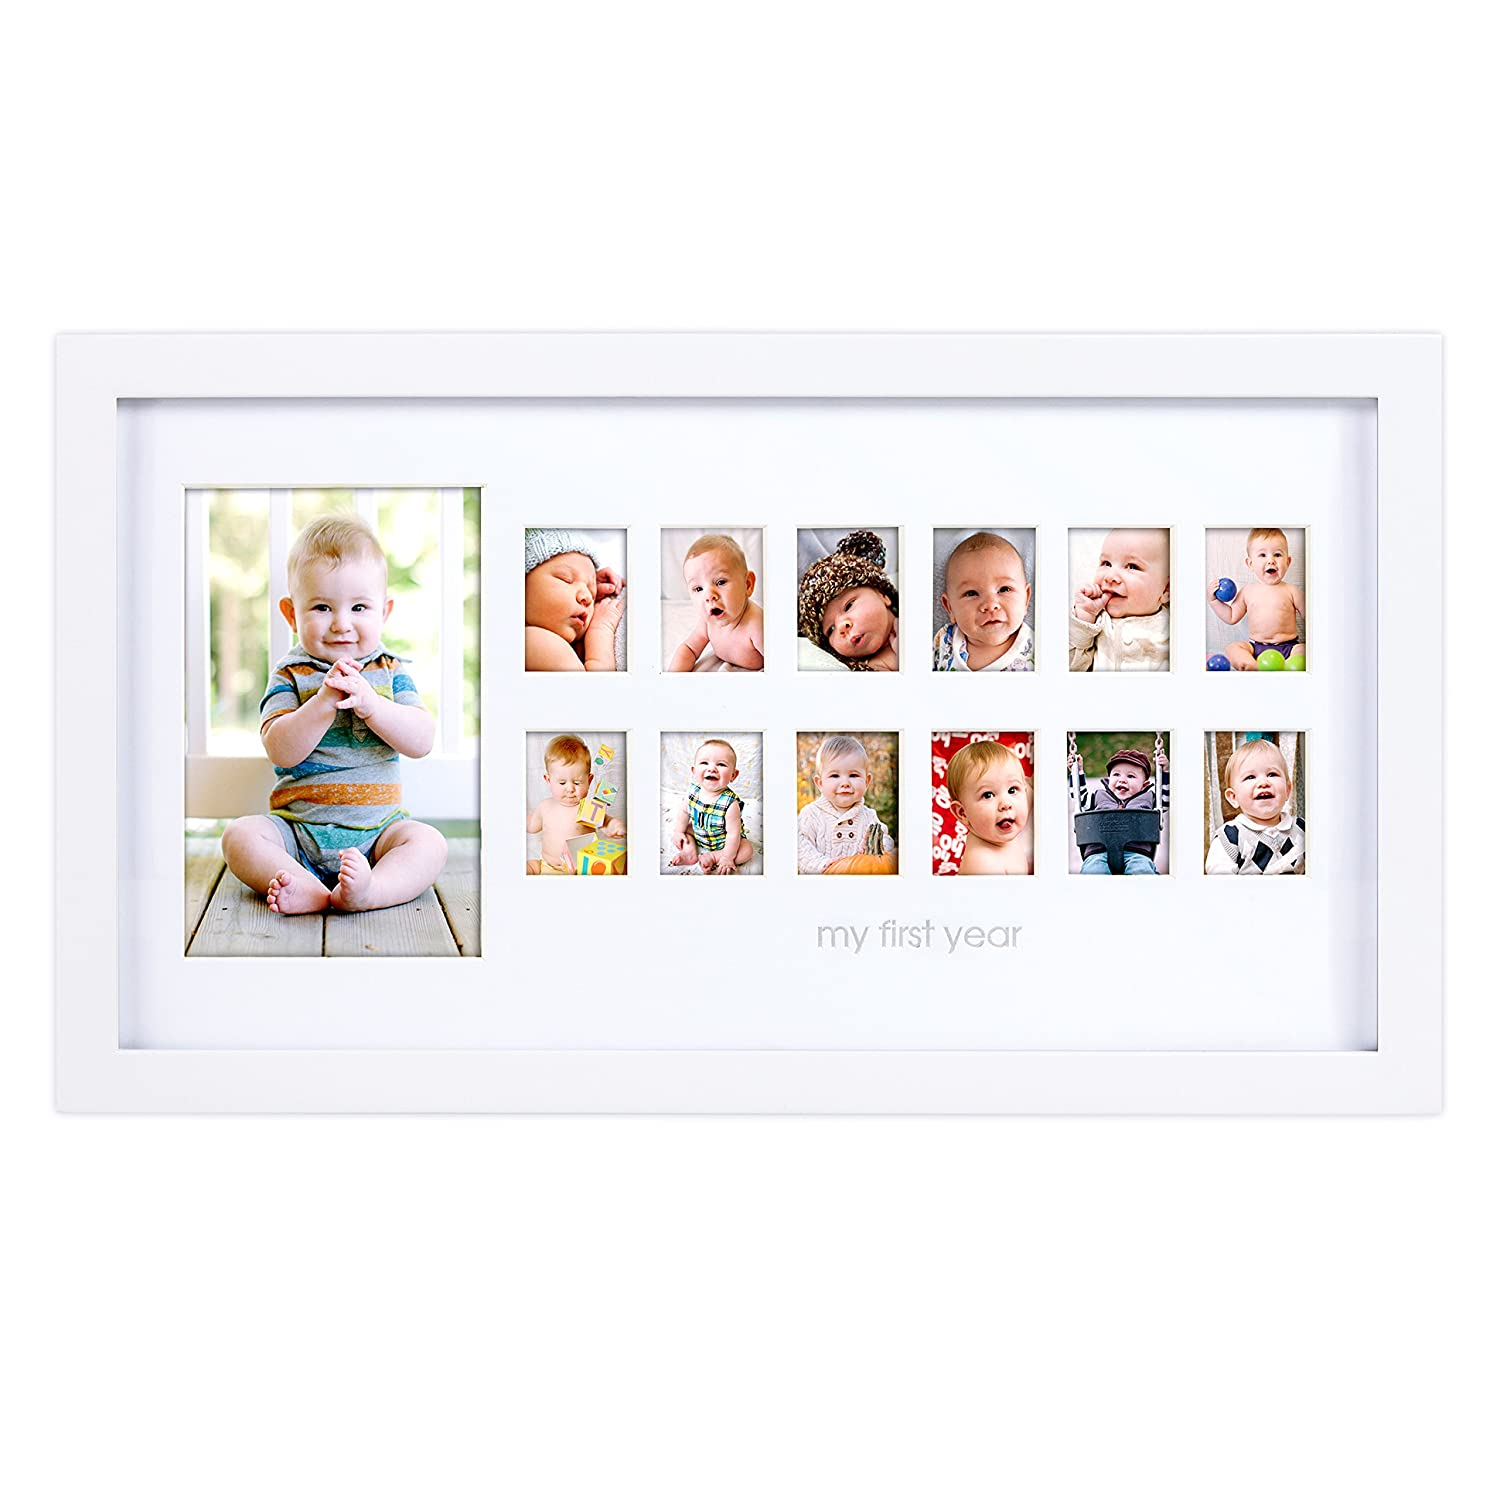 amazoncom pearhead my first year photo moments baby keepsake frame white baby - My First Year Picture Frame